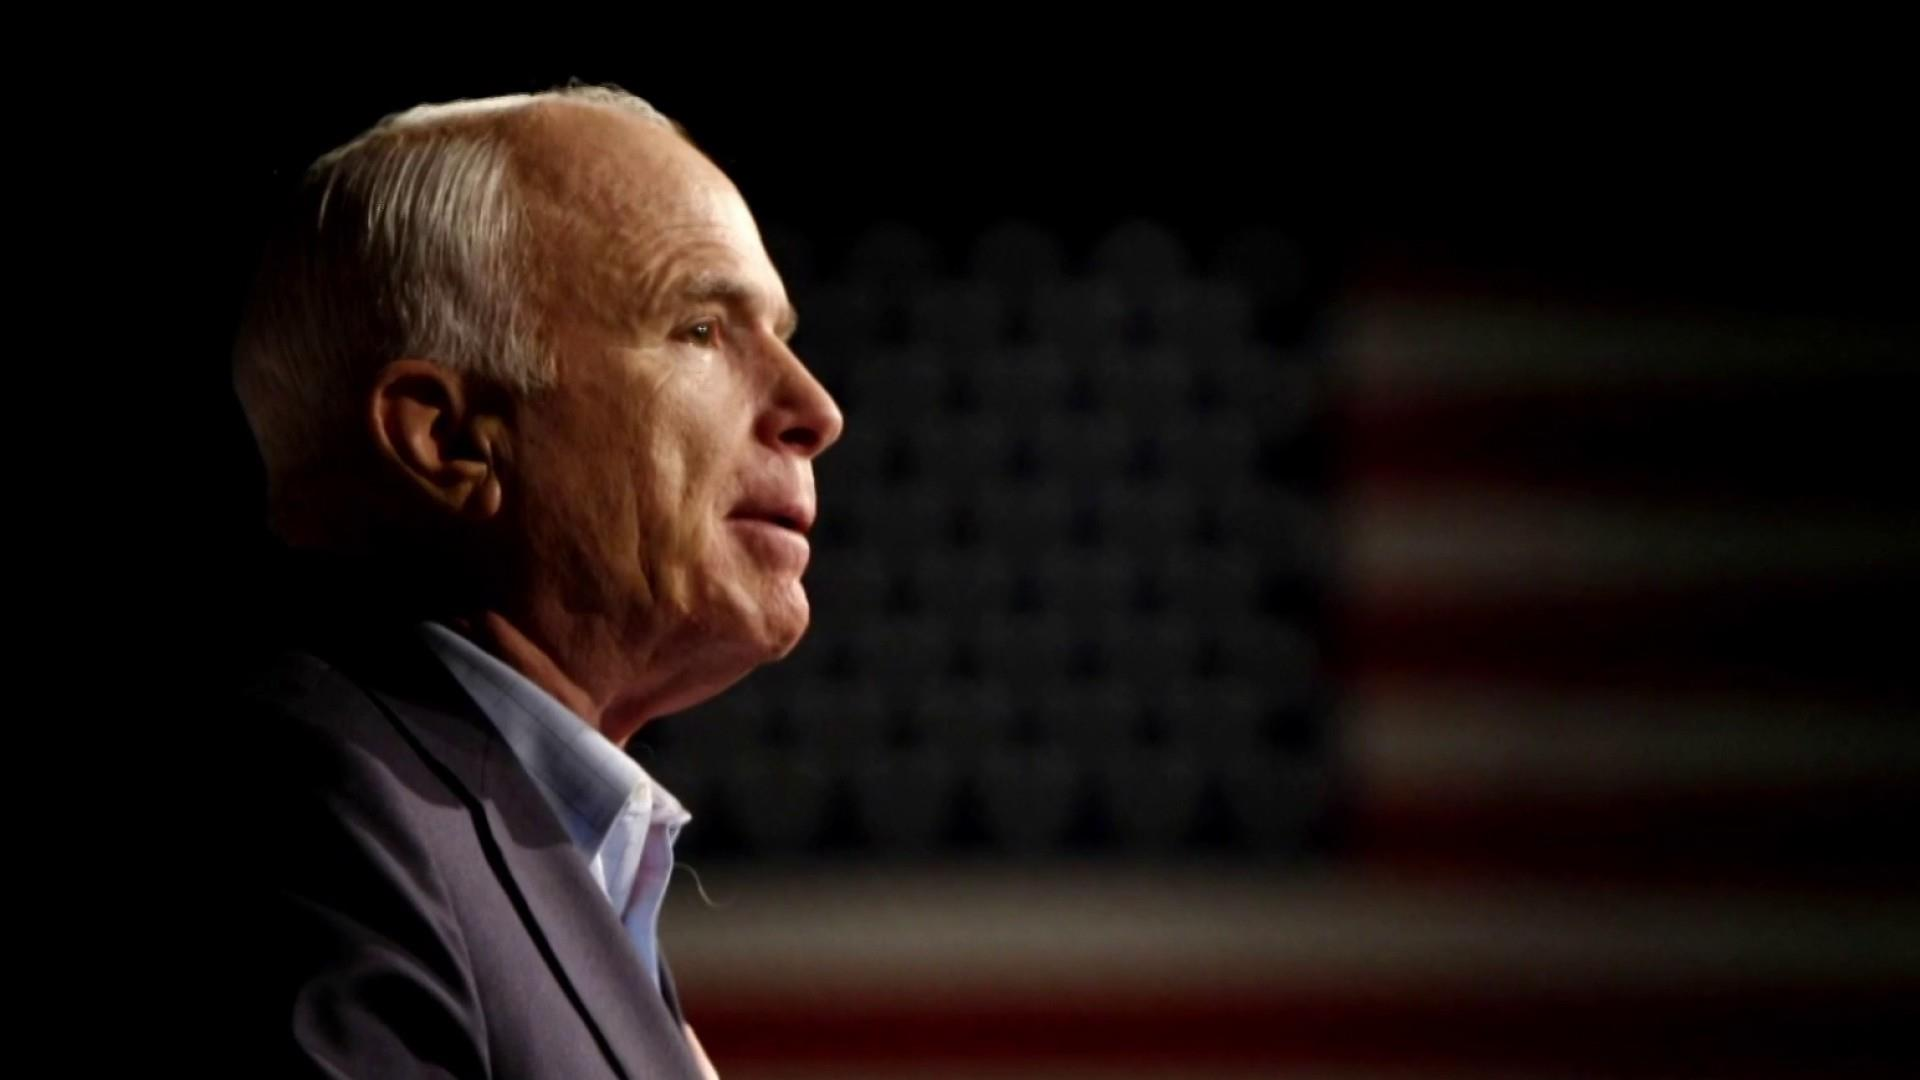 When attacking McCain, Trump only hurts himself